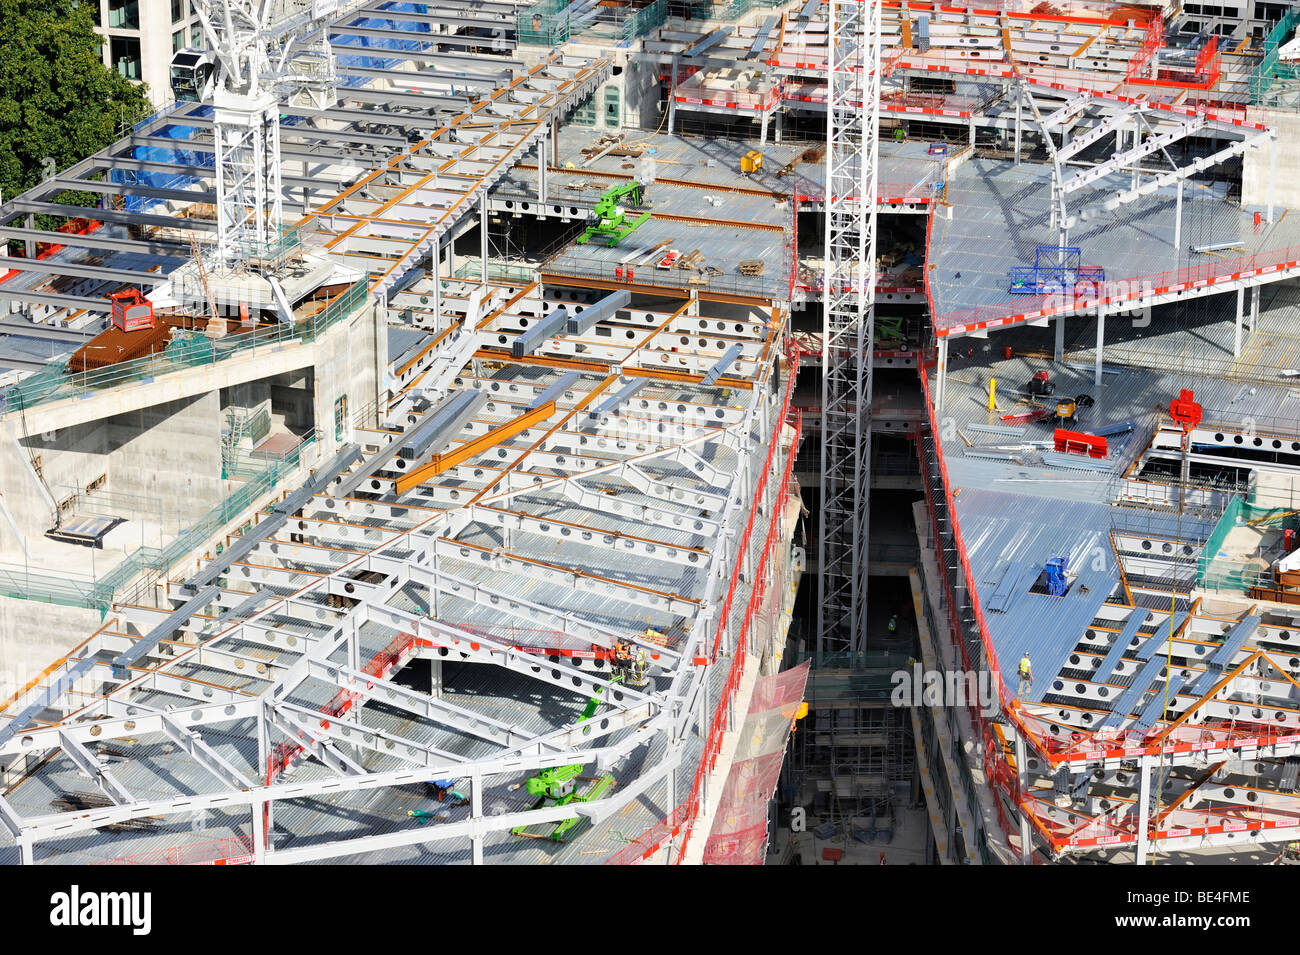 Construction site of an office building in downtown London, England, United Kingdom, Europe - Stock Image